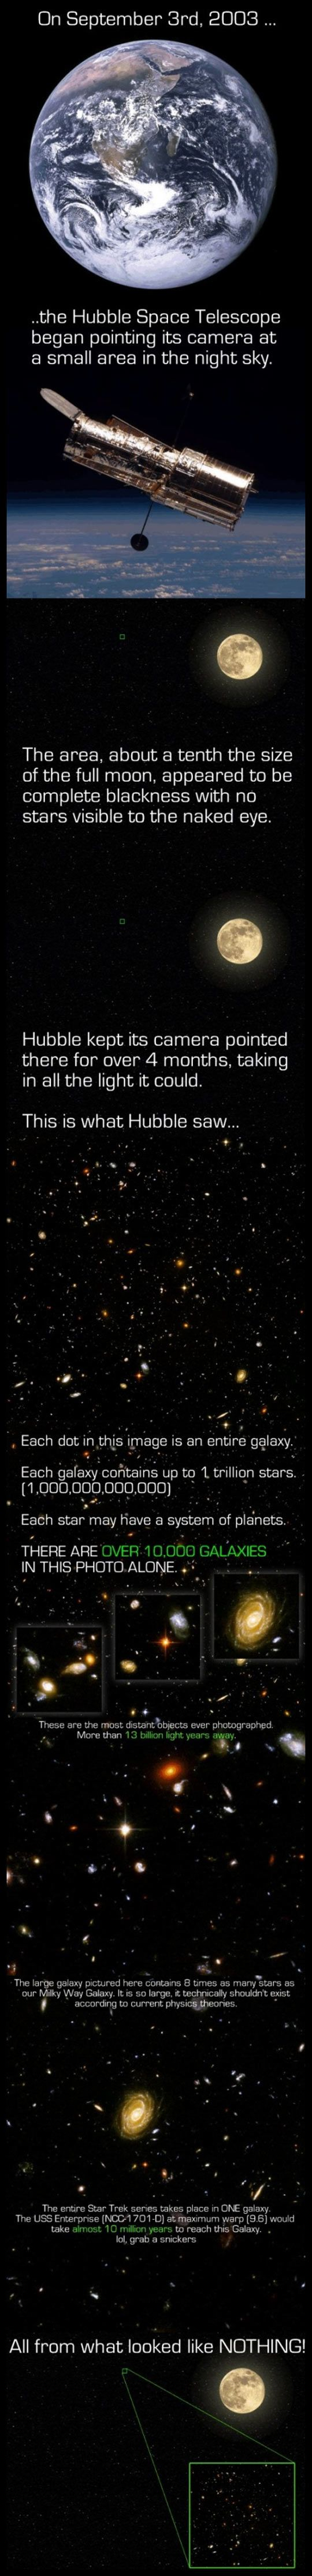 Some feel that it is egotistical & ignorant to believe we are alone in the universe. Most agree that it is difficult for us to grasp the vastness of space